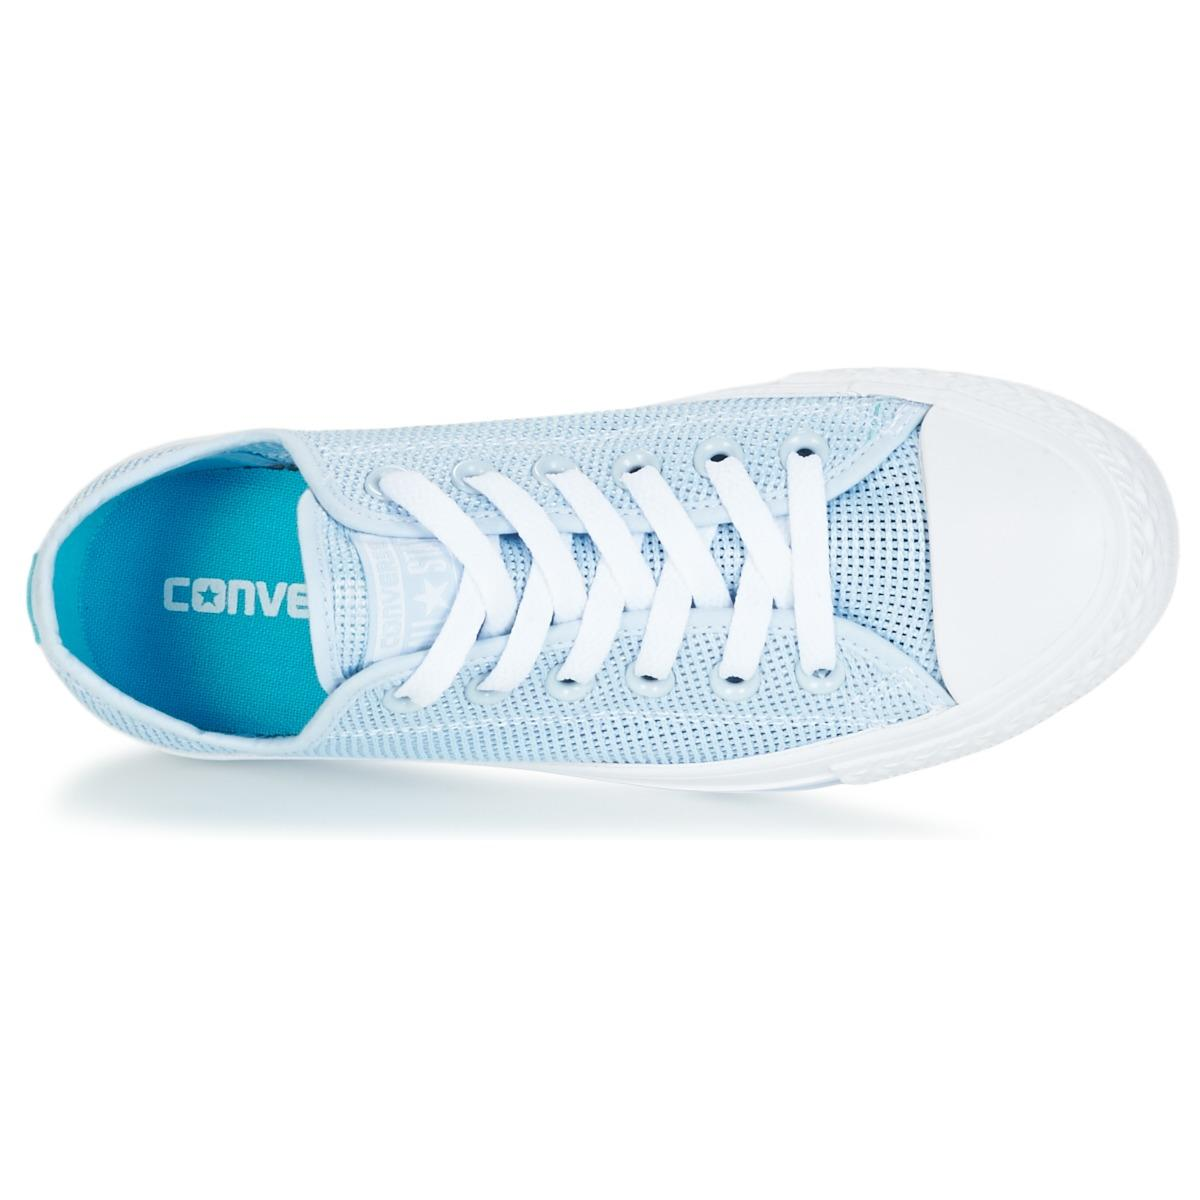 Converse Chuck Taylor All Star - Ox Shoes (trainers) in Blue